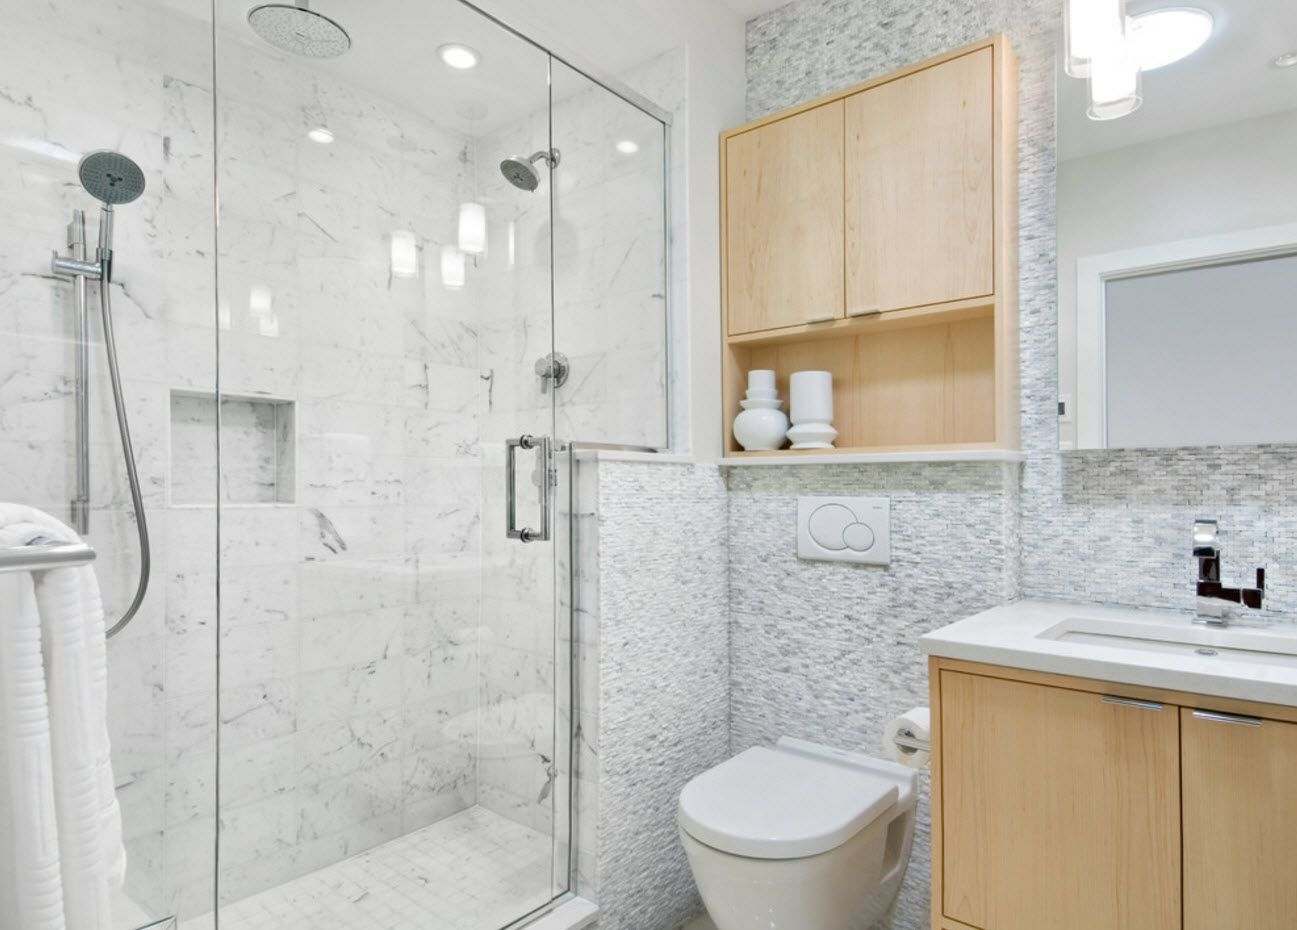 Small Bathroom Interior Space Optimization Ideas & Layout Photos 2017 Mirror glass surfaces of the shower